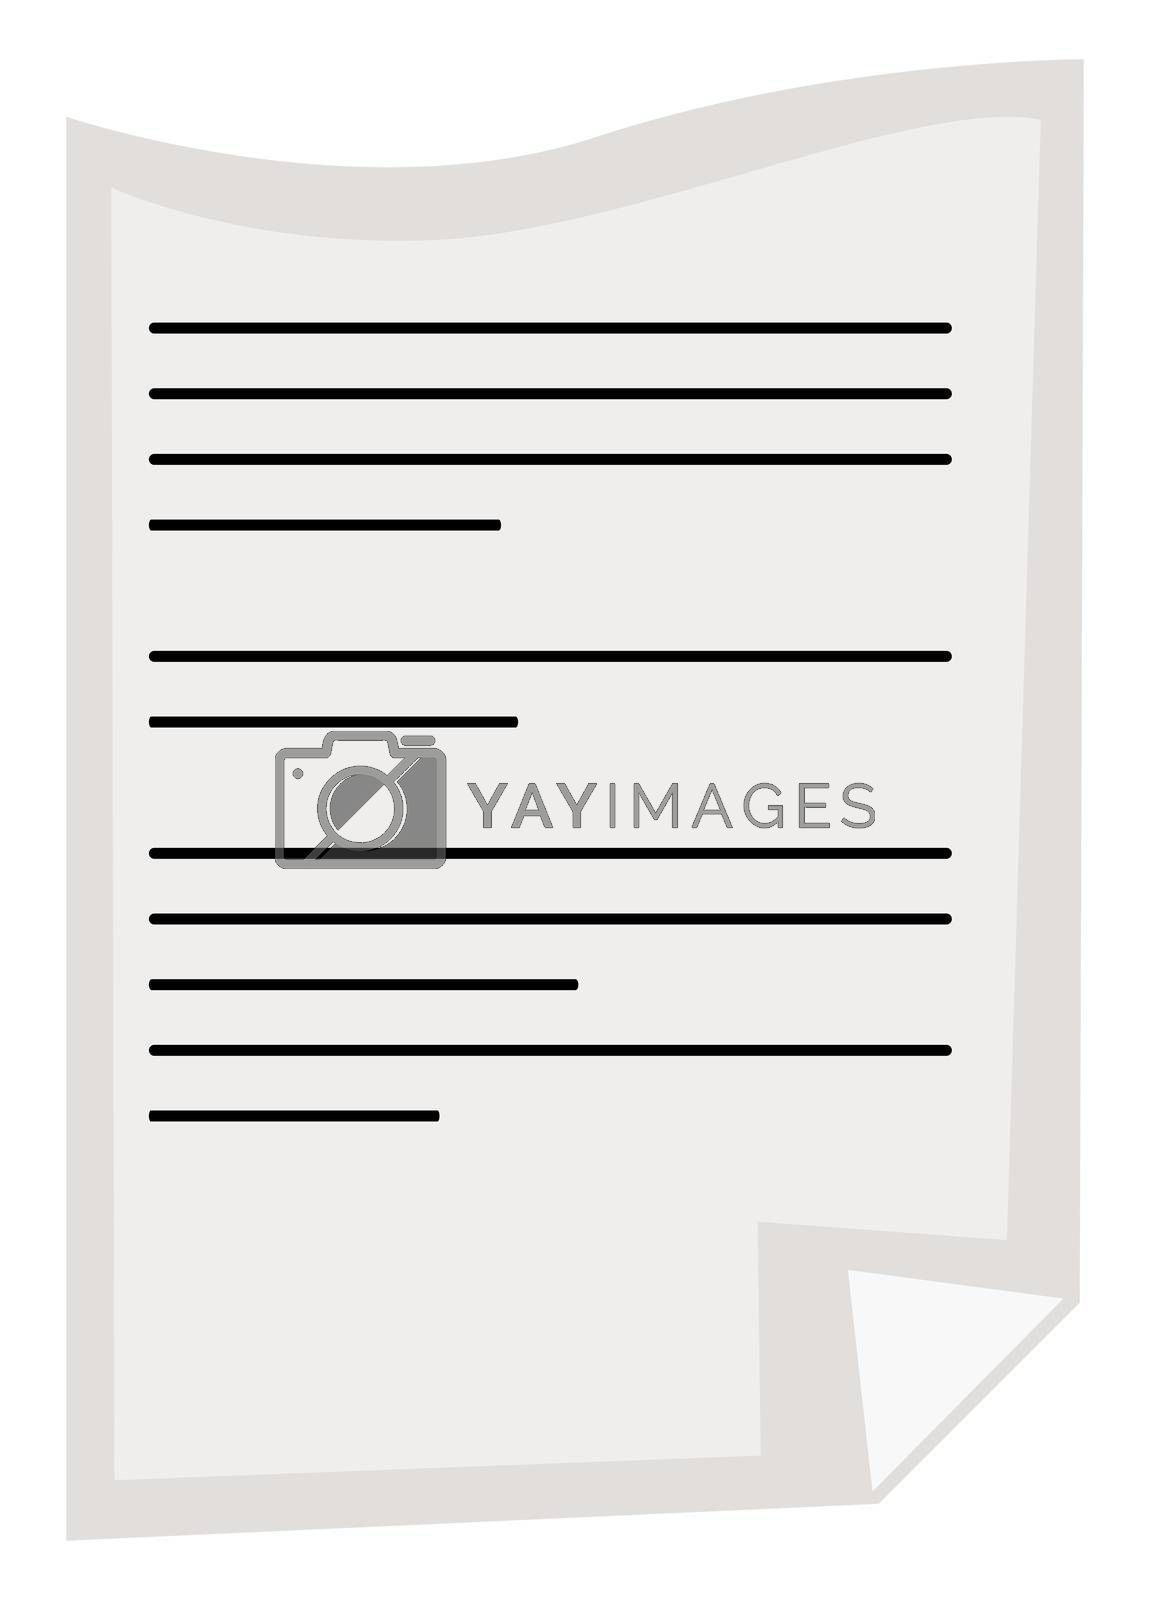 Royalty free image of Notes on paper, illustration, vector on white background by Morphart